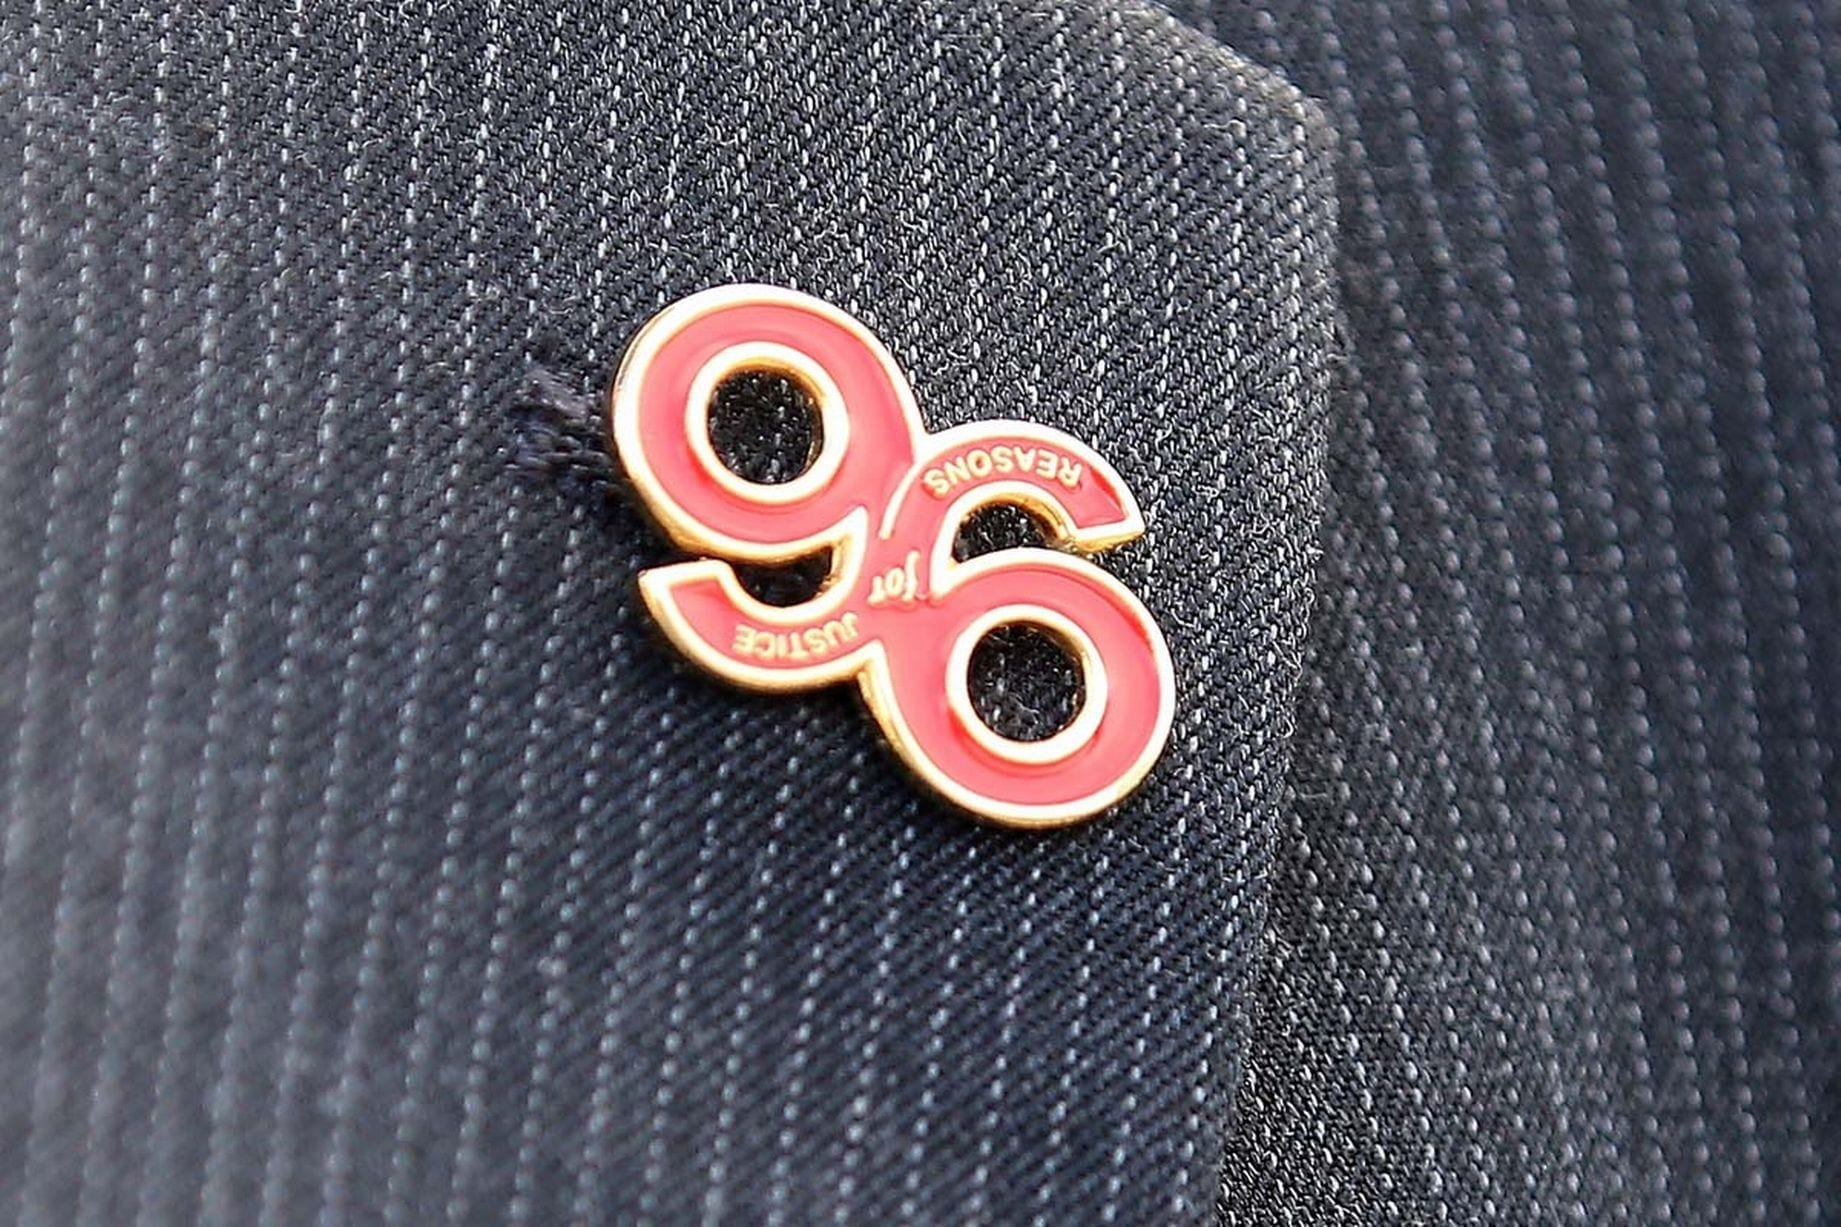 Finally, Justice for the 96